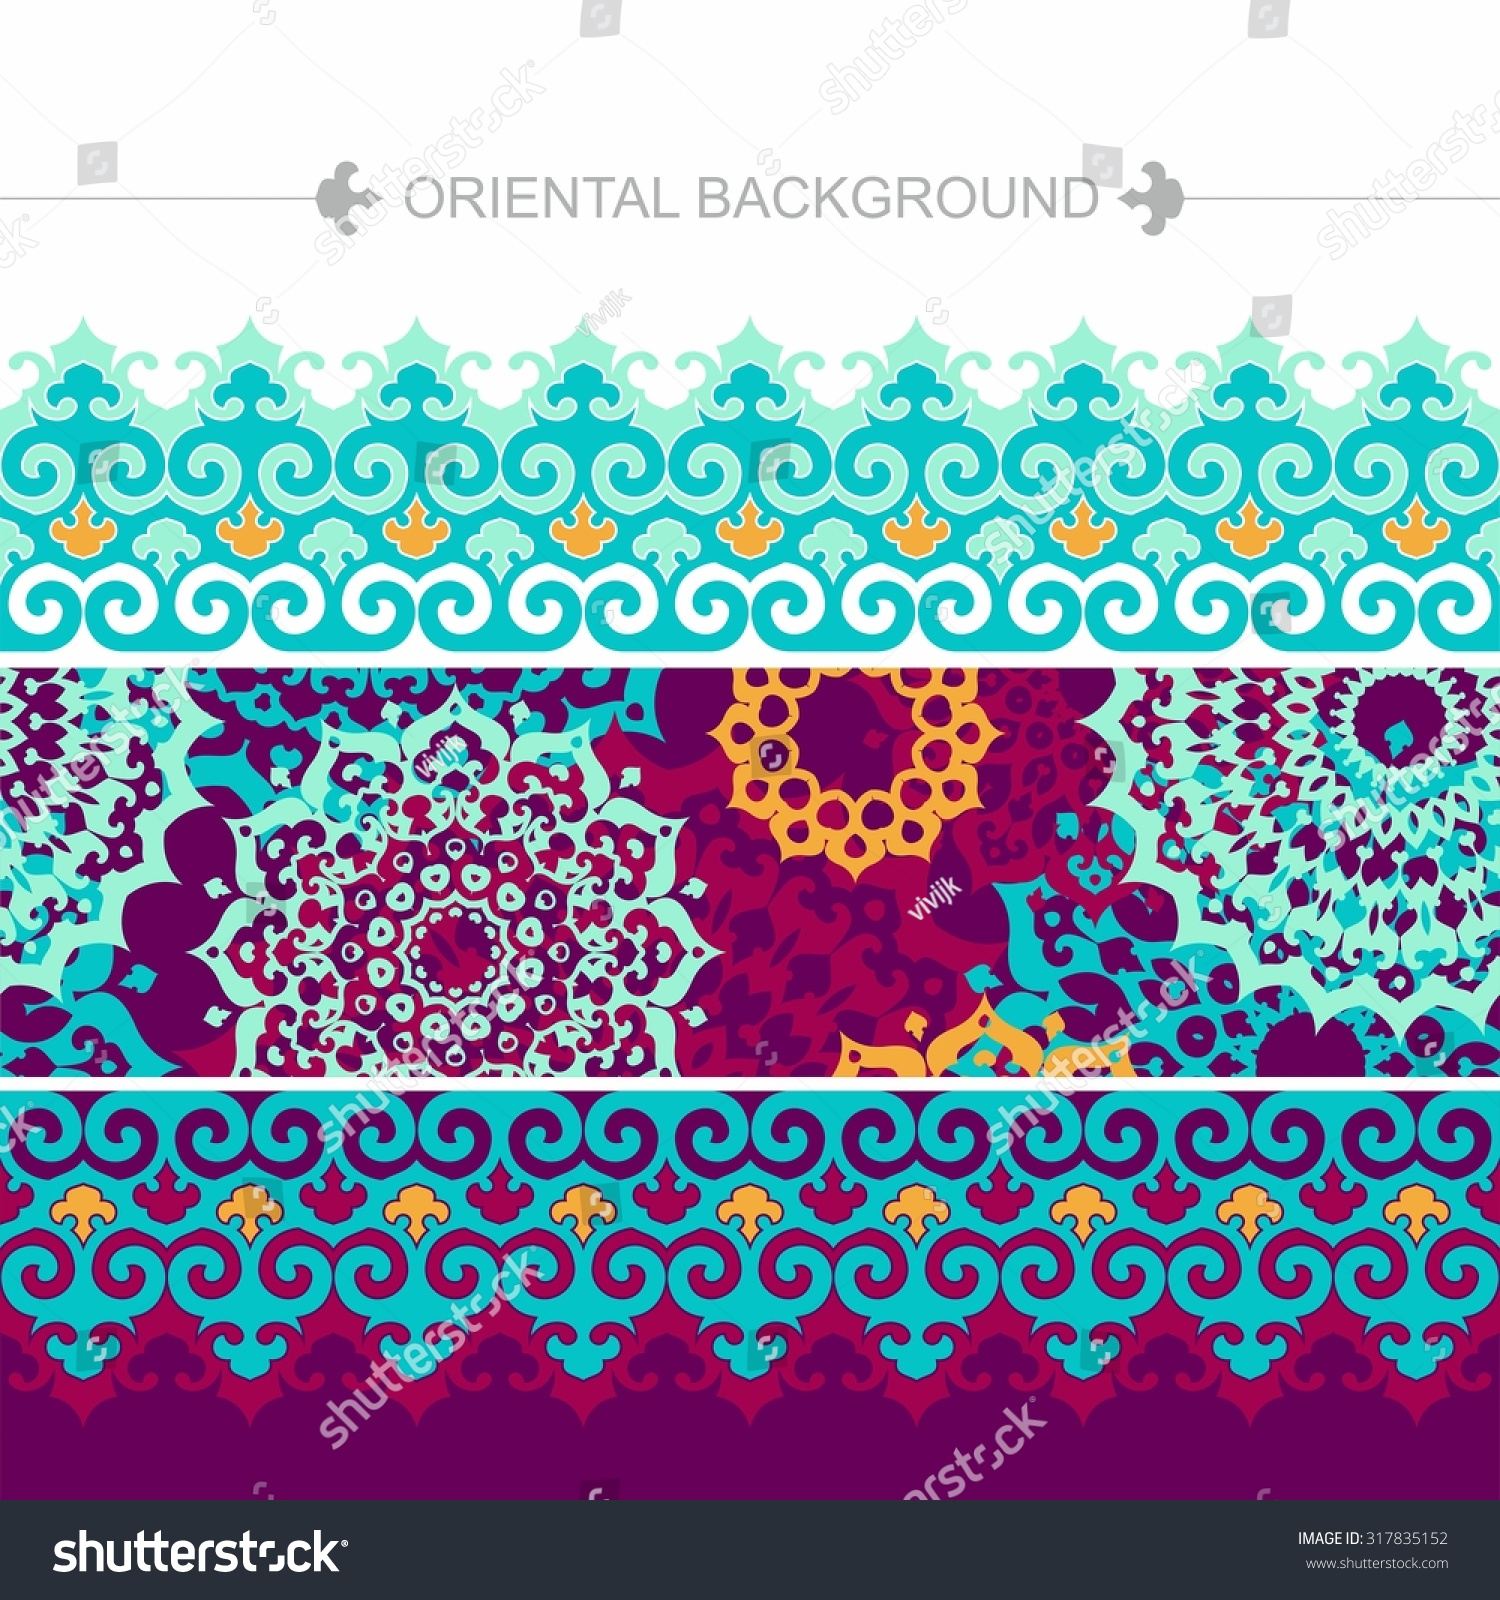 Bright colorful background with ornamental elements in oriental style Islam Arabic motifs Mandala forms Seamless border